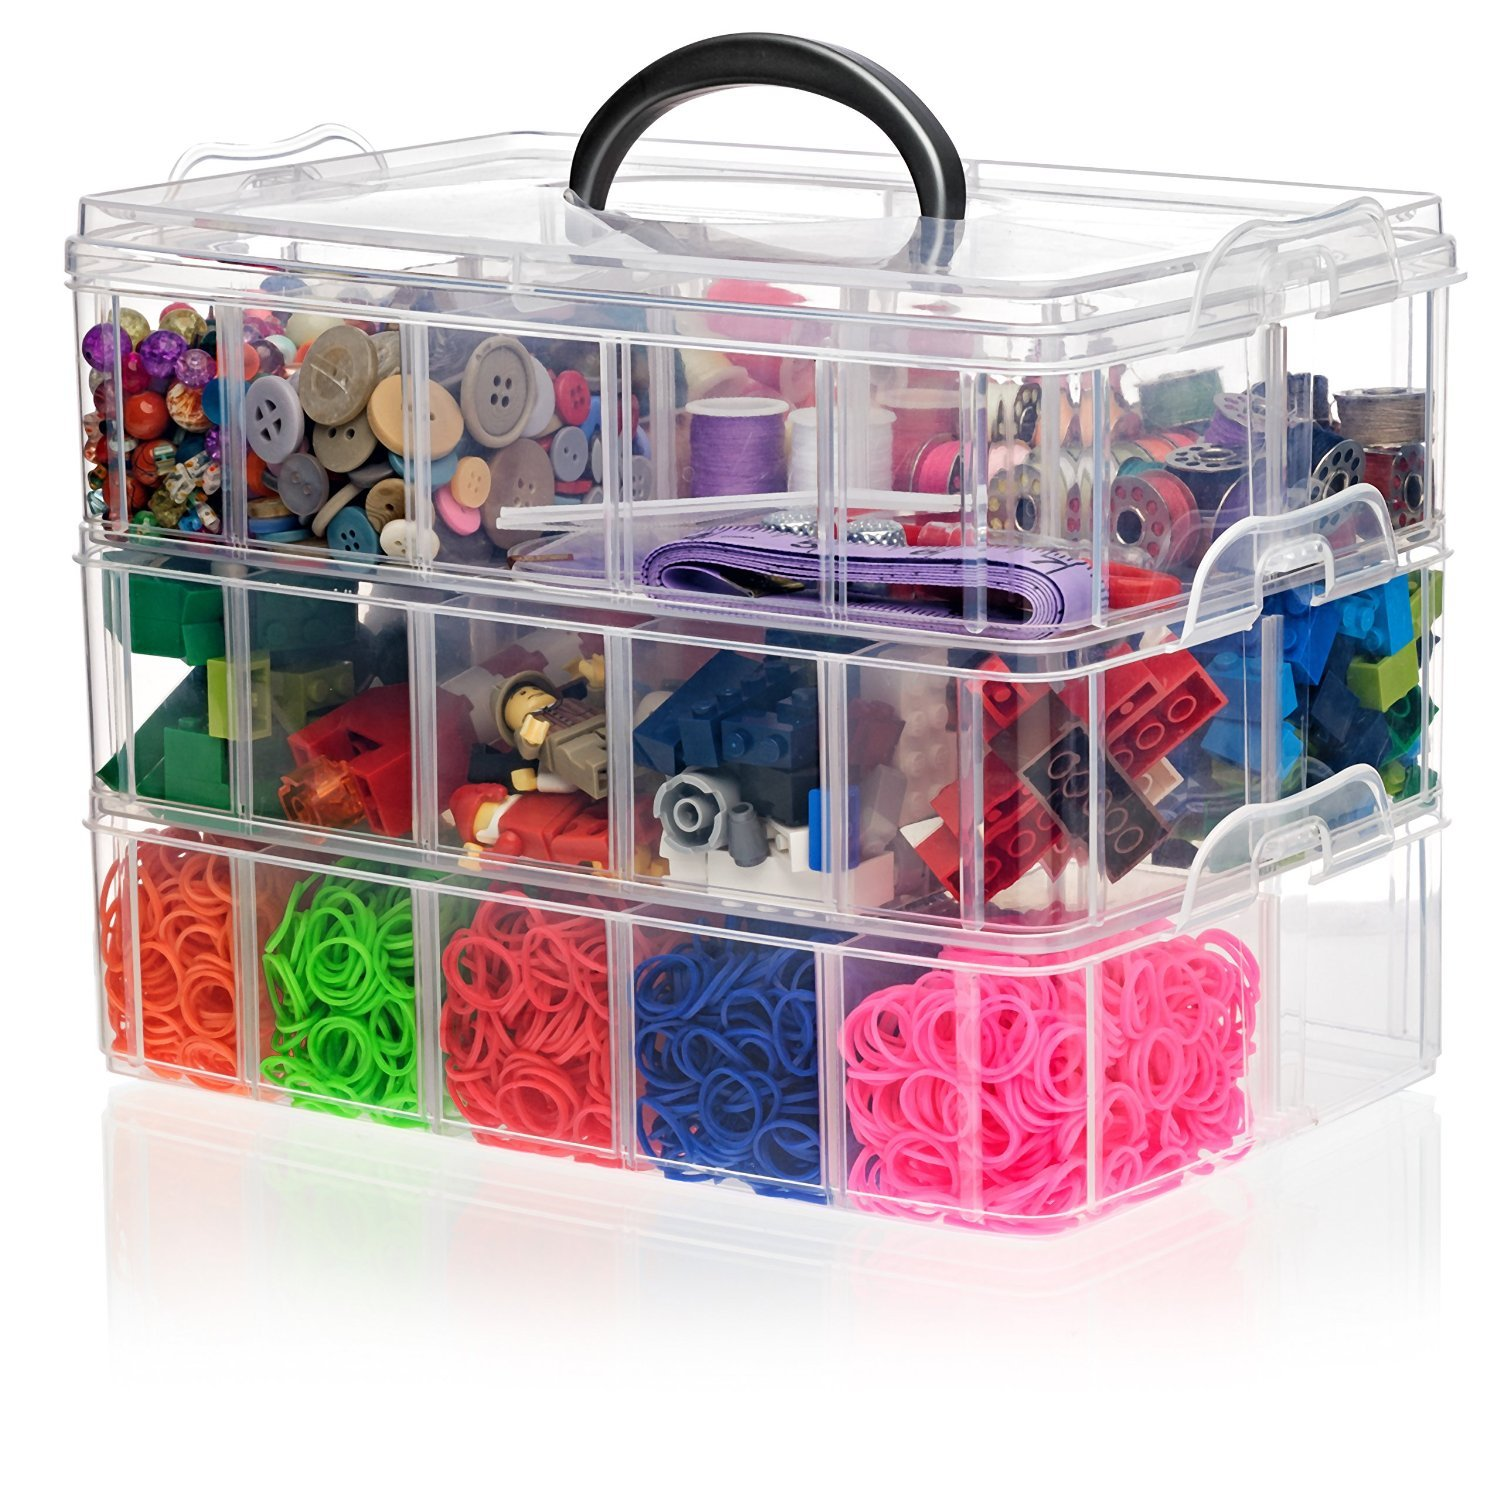 SnapCube Stackable Arts & Crafts Case, 3-Tier Clear Stackable Storage Box with Compartments, On-The-Go Craft Keeper, Jewelry Box, Bead Organizer Case, Kids Jewellery Box w/ Dividers, Tool Storage Box by California Home Goods